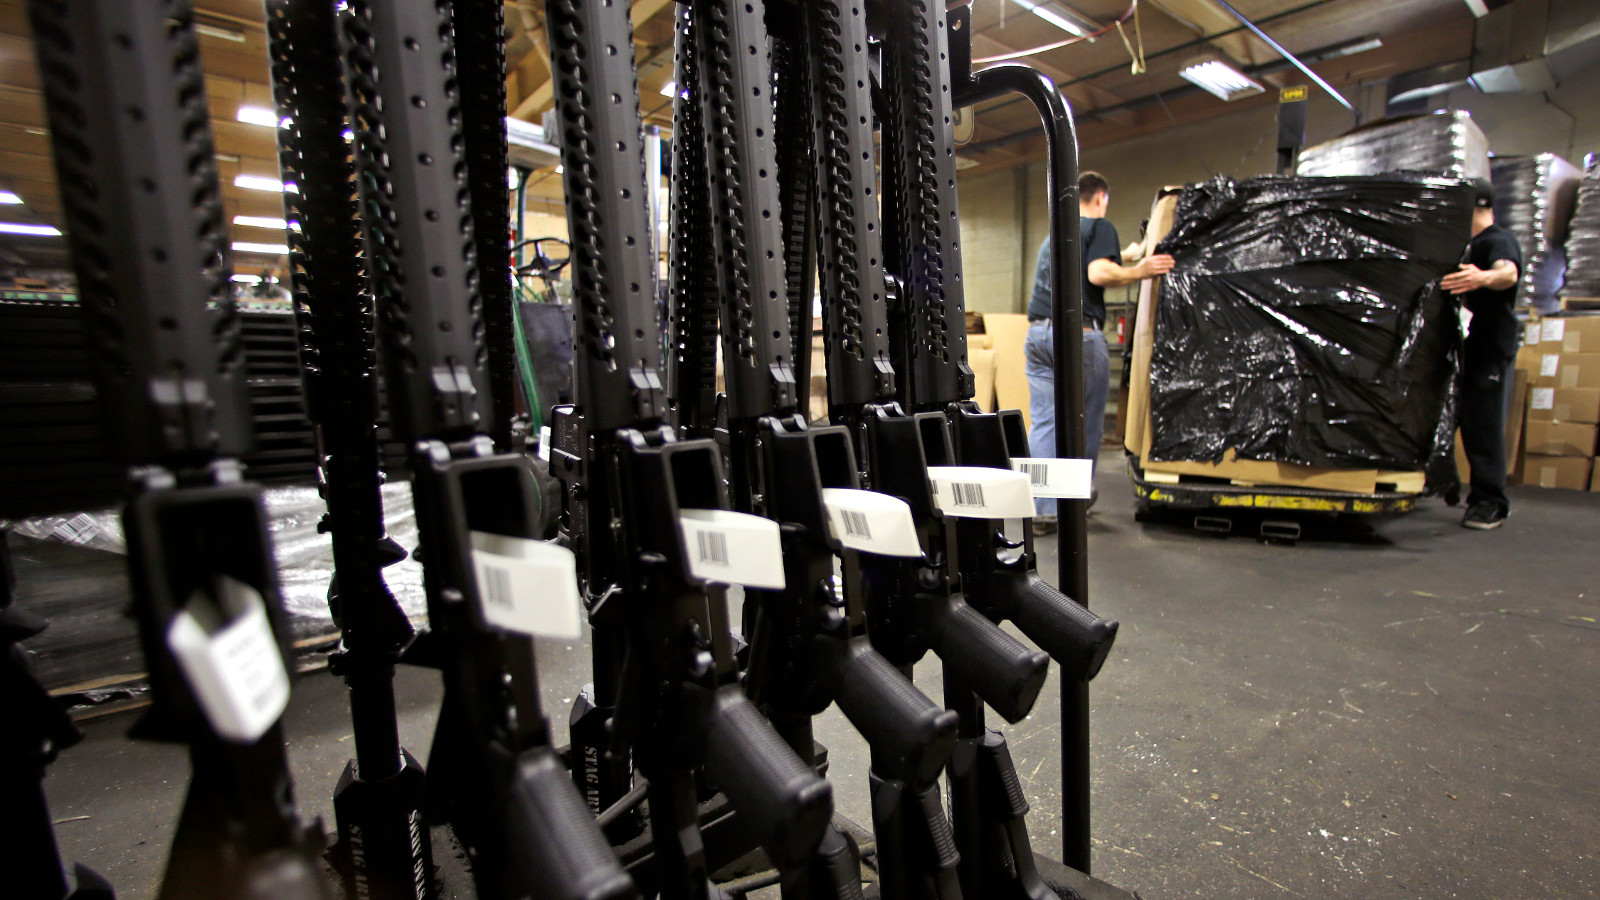 "A rack of AR-15 rifles stand to be individually packaged as workers move a pallet of rifles for shipment at the Stag Arms company in New Britain, Conn., Wednesday, April 10, 2013. A Connecticut gun-maker announced on Wednesday it intends to leave the state, just six days after passage of restrictive gun control legislation, while another manufacturer, Stag Arms, which employs about 230 workers, says its customers are urging it to ""pick up and leave."""